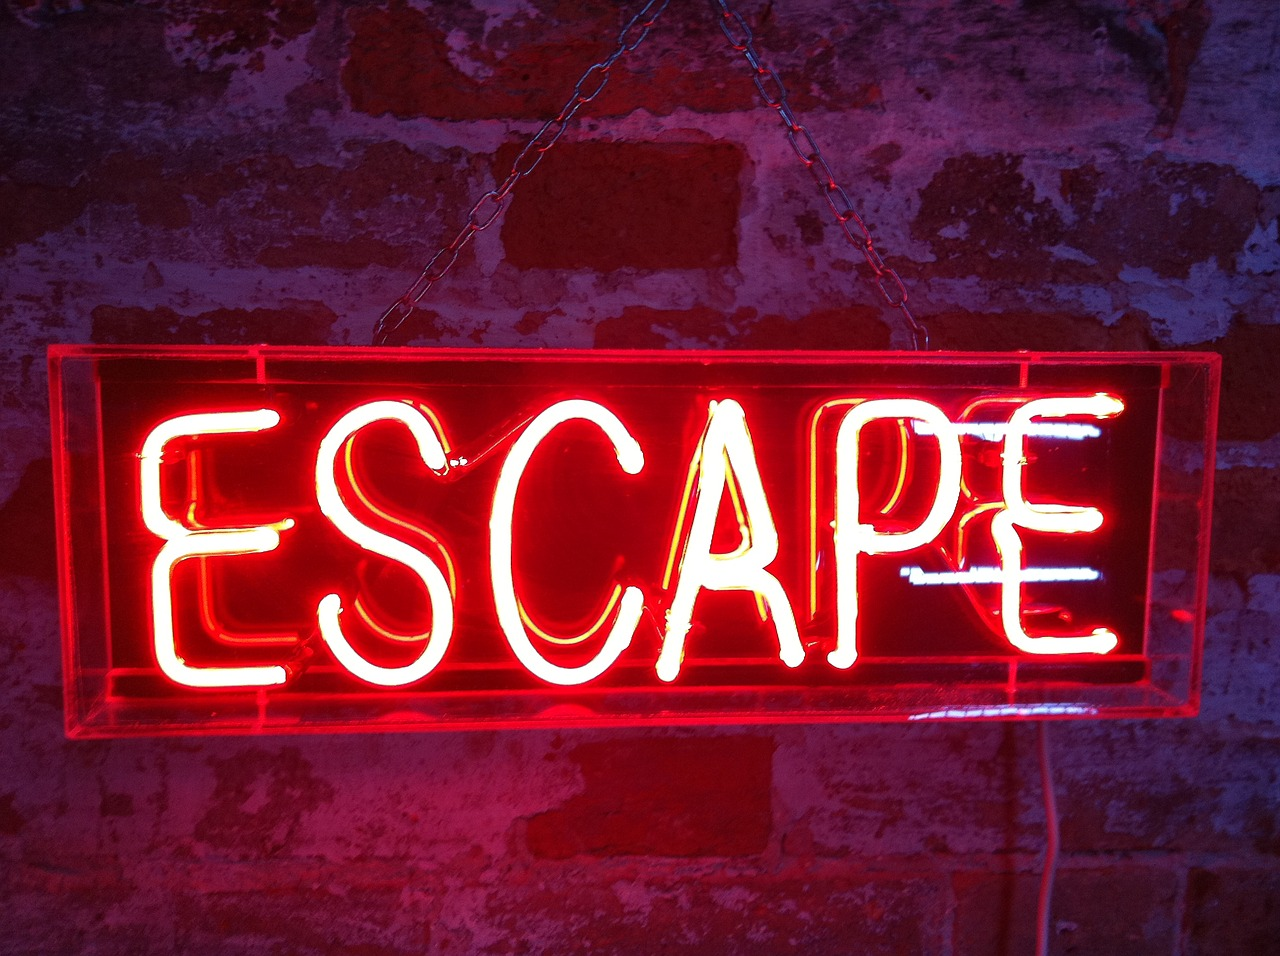 neon,escape,exit,departure,free pictures, free photos, free images, royalty free, free illustrations, public domain